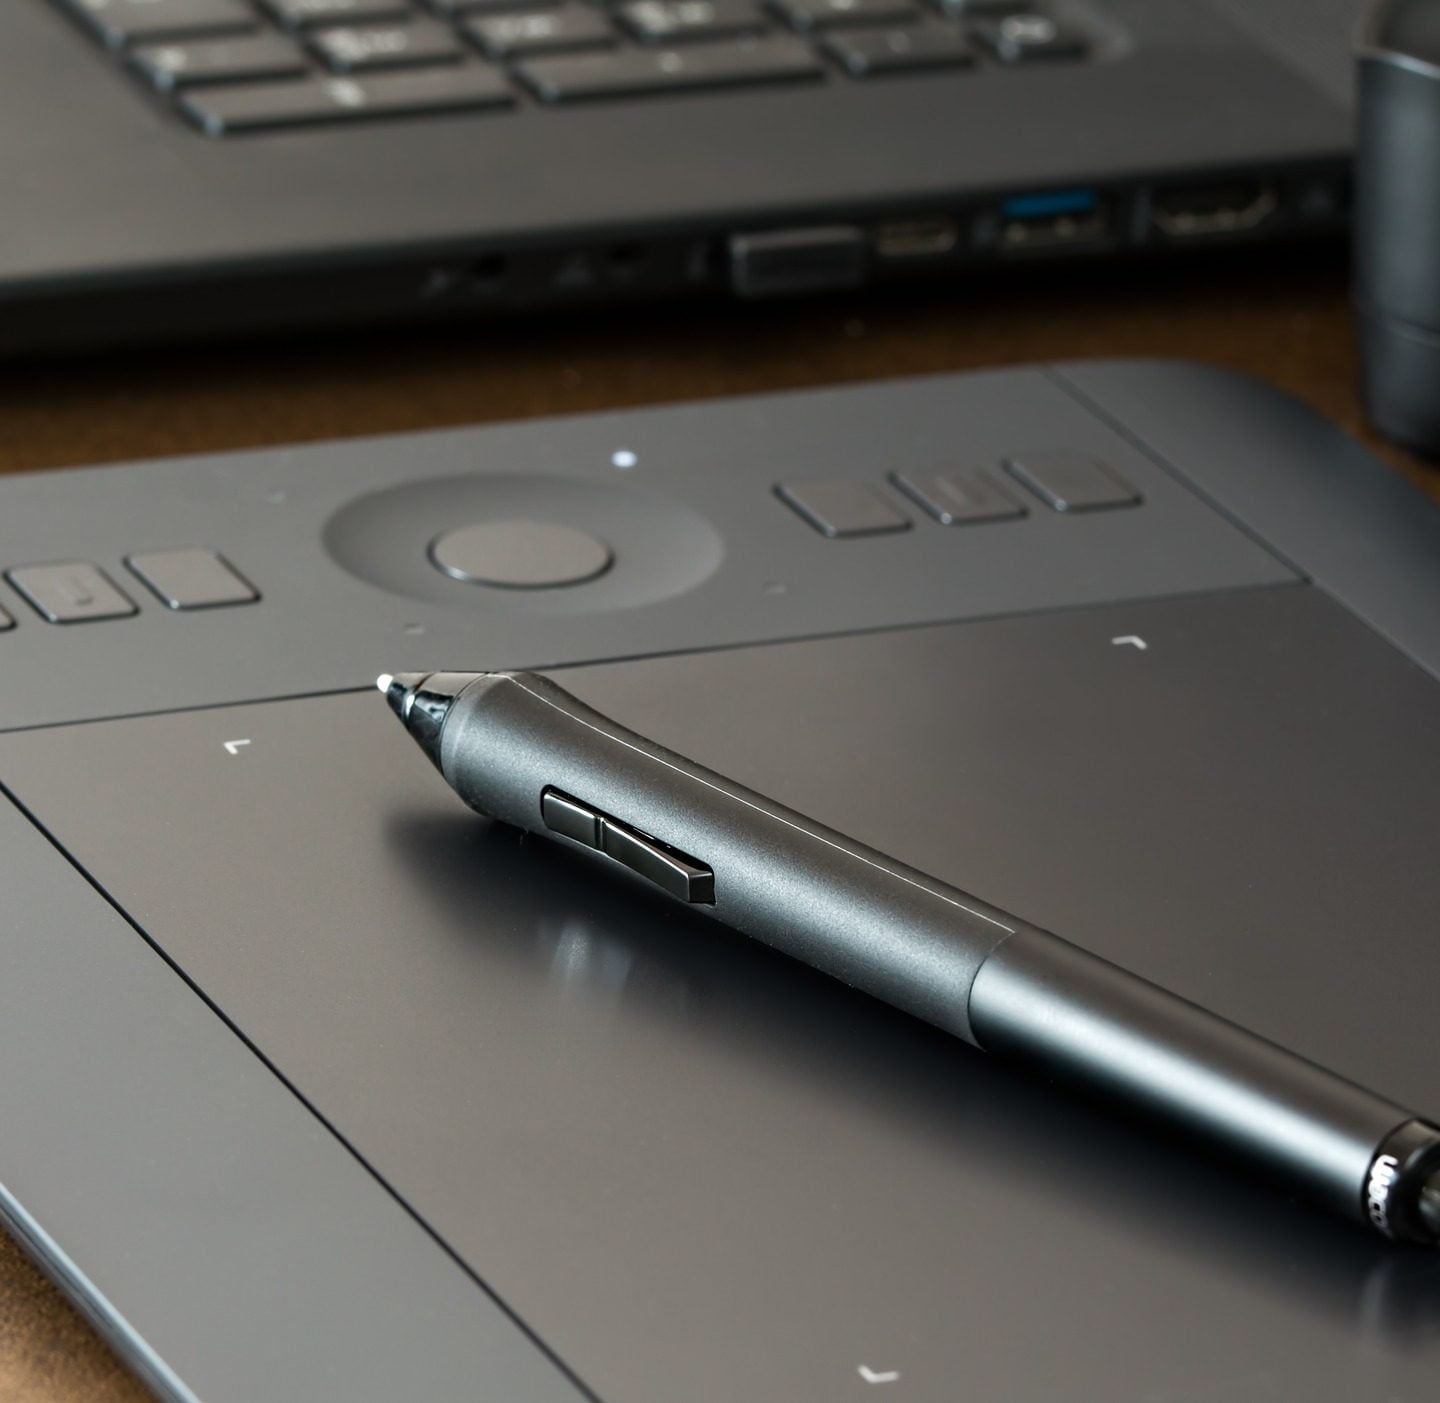 5 Cheap but Good Drawing Tablets – Finding the Best Tablet to Draw On